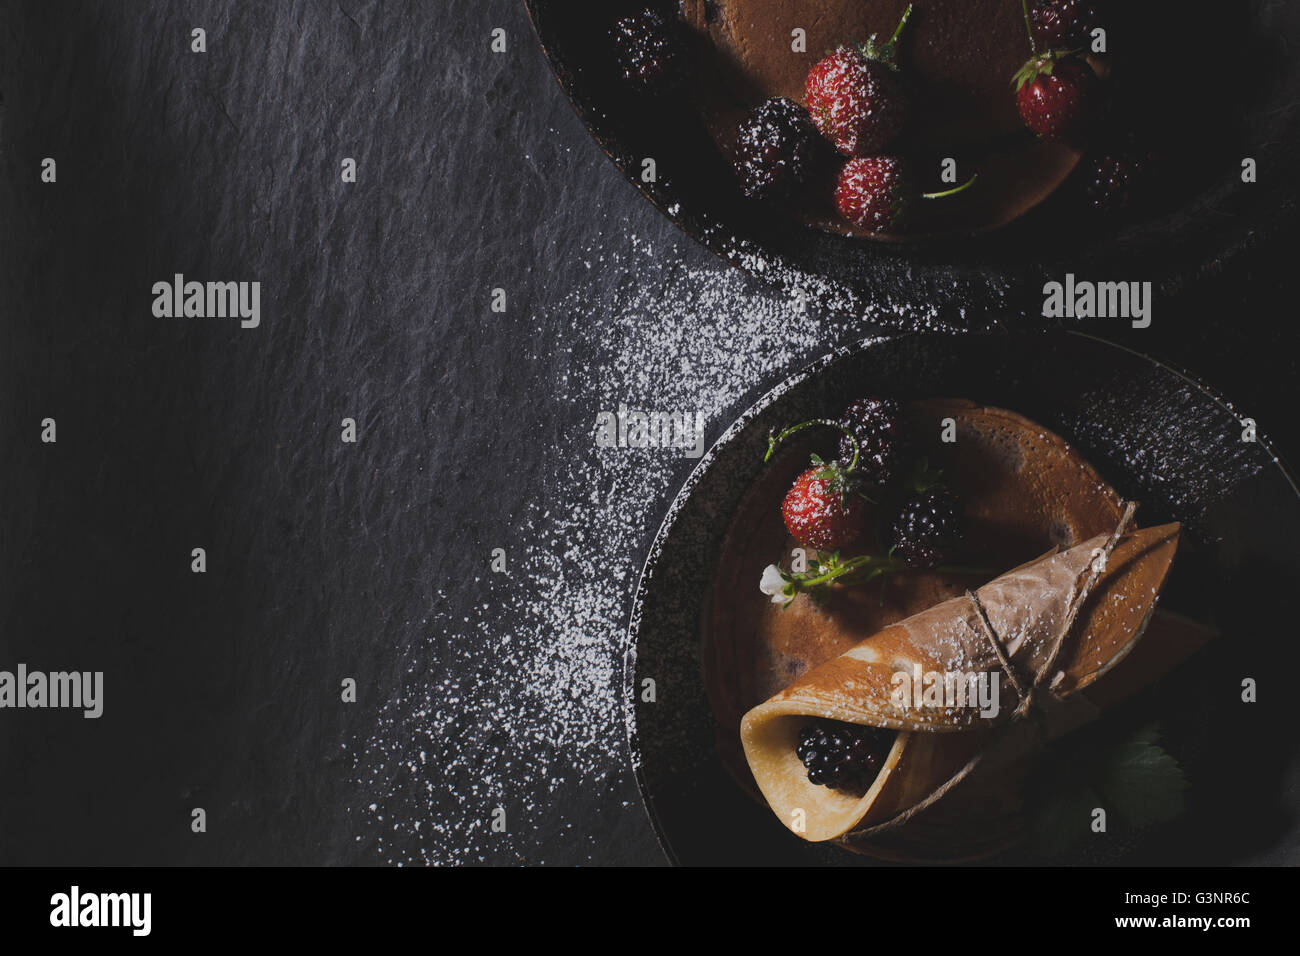 Chocolate pancakes on rusty pans lying on dark stone with beautiful light, flat lay - Stock Image